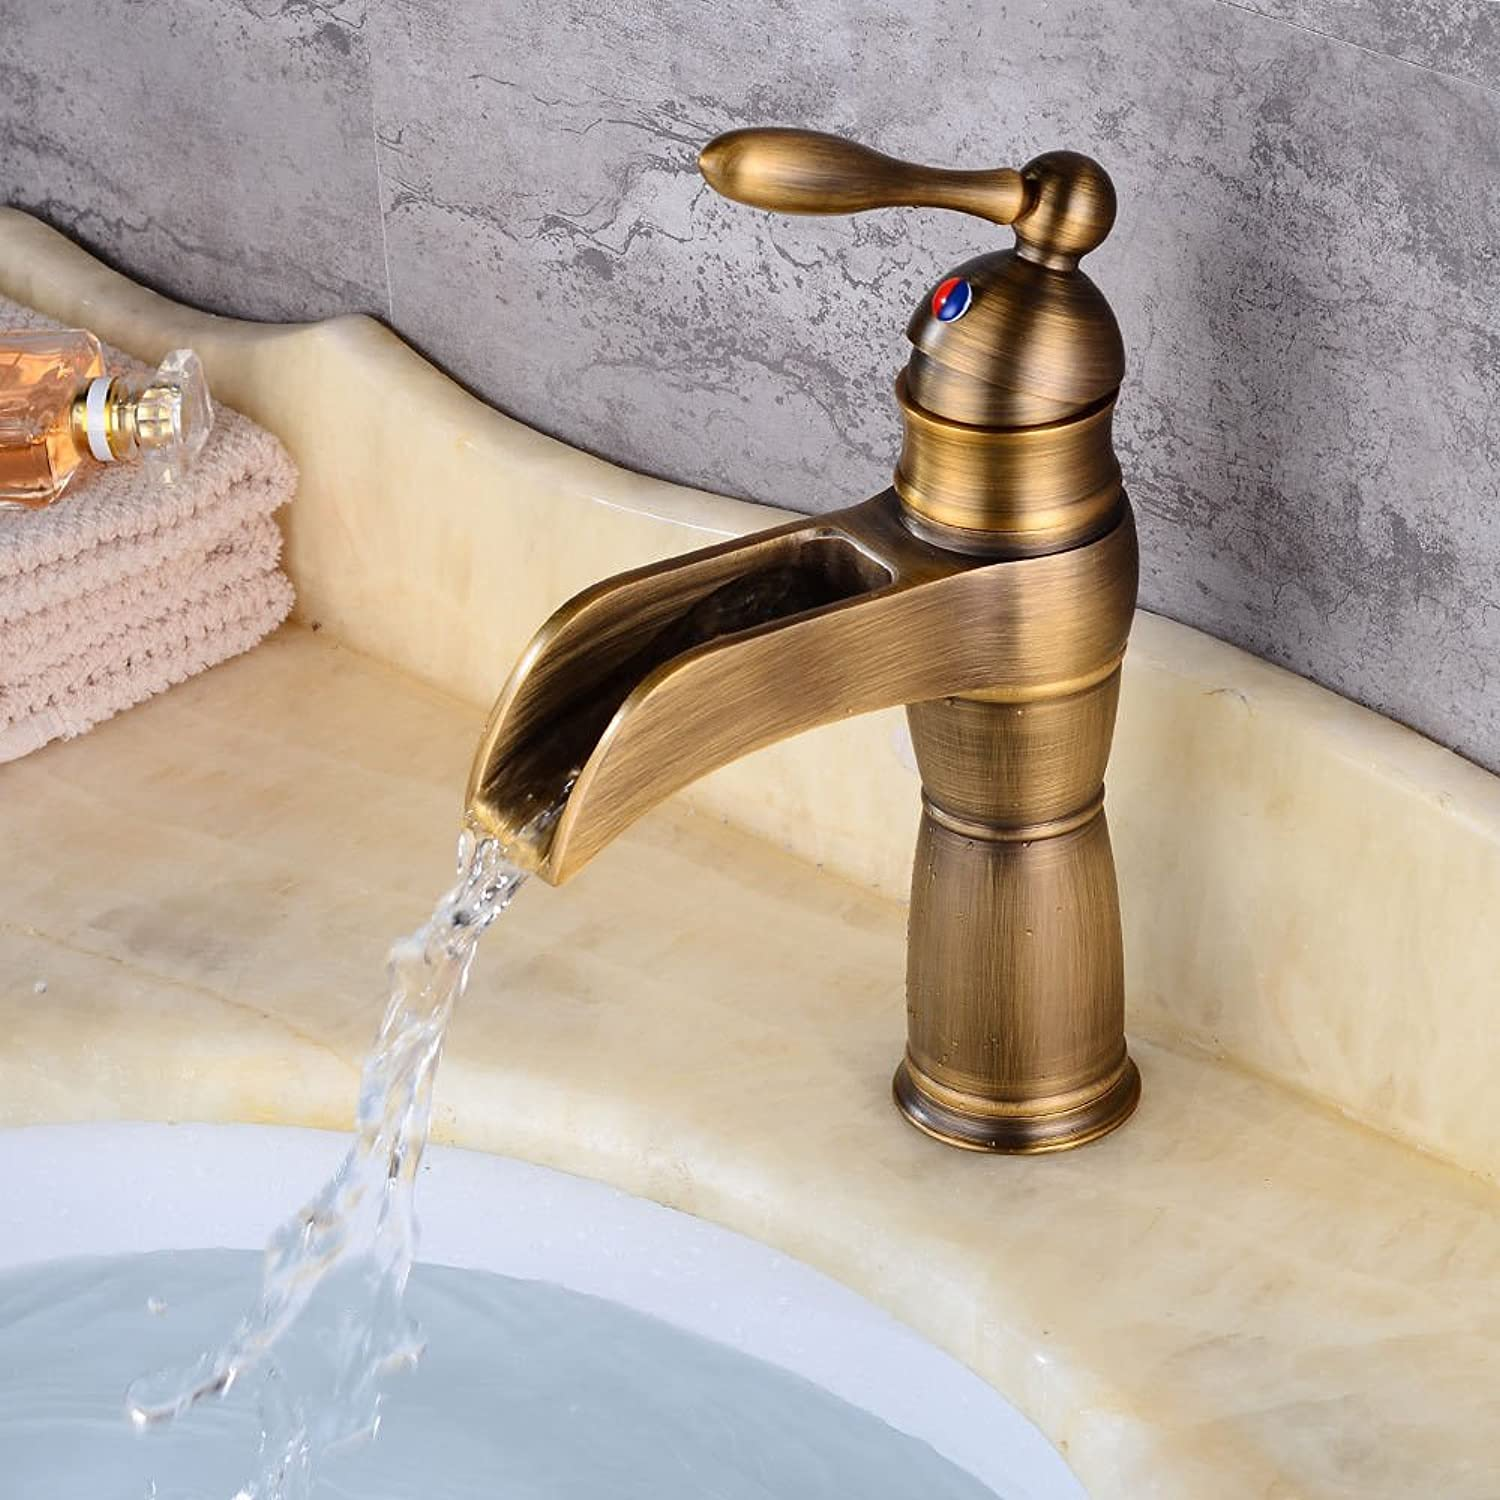 AQMMi Basin Sink Mixer Tap for Lavatory Antique Copper Single Lever Hot and Cold Water Waterfall Bathroom Vanity Sink Faucet